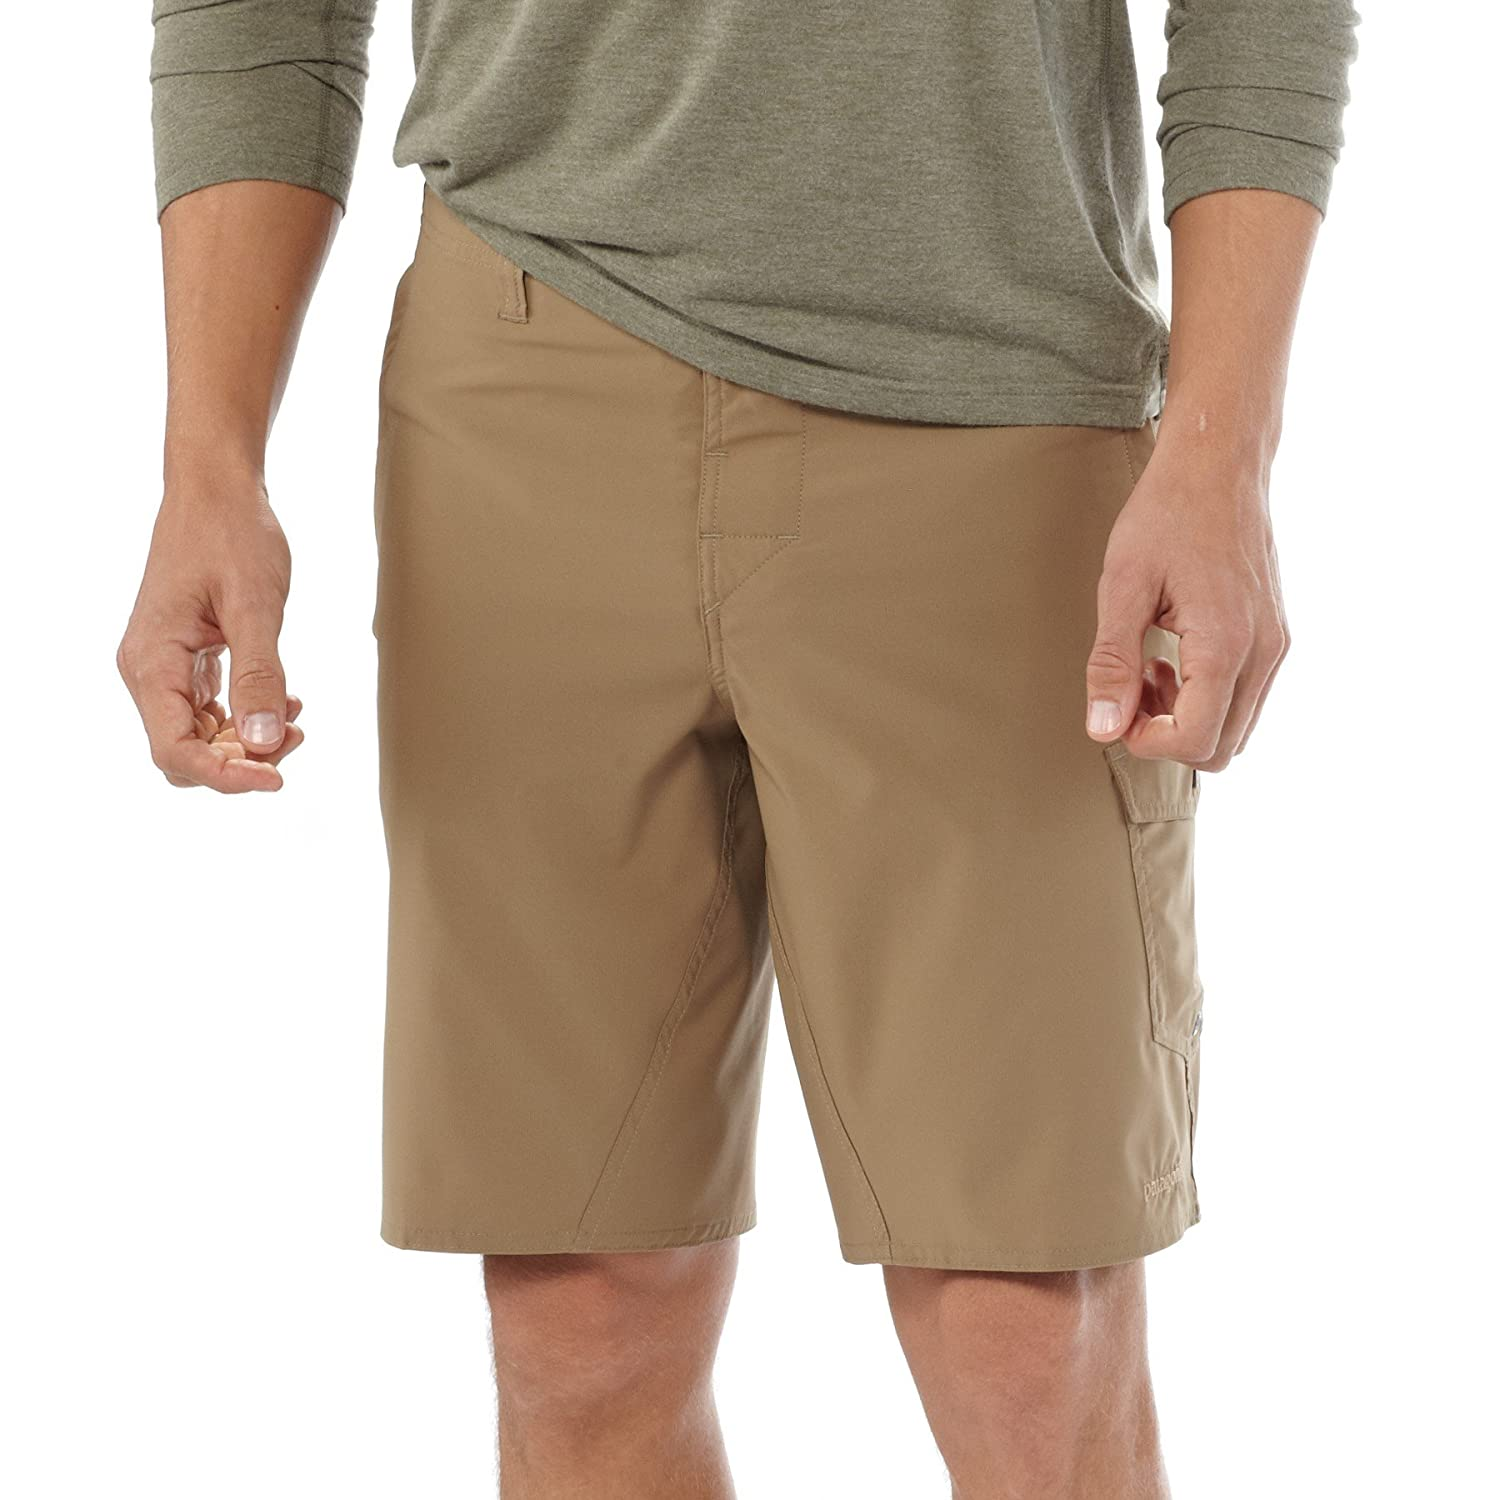 cd95bcb3e6 Stretch Terre Planing Cargo Shorts - 21 inch Ash Tan: Amazon.co.uk: Clothing